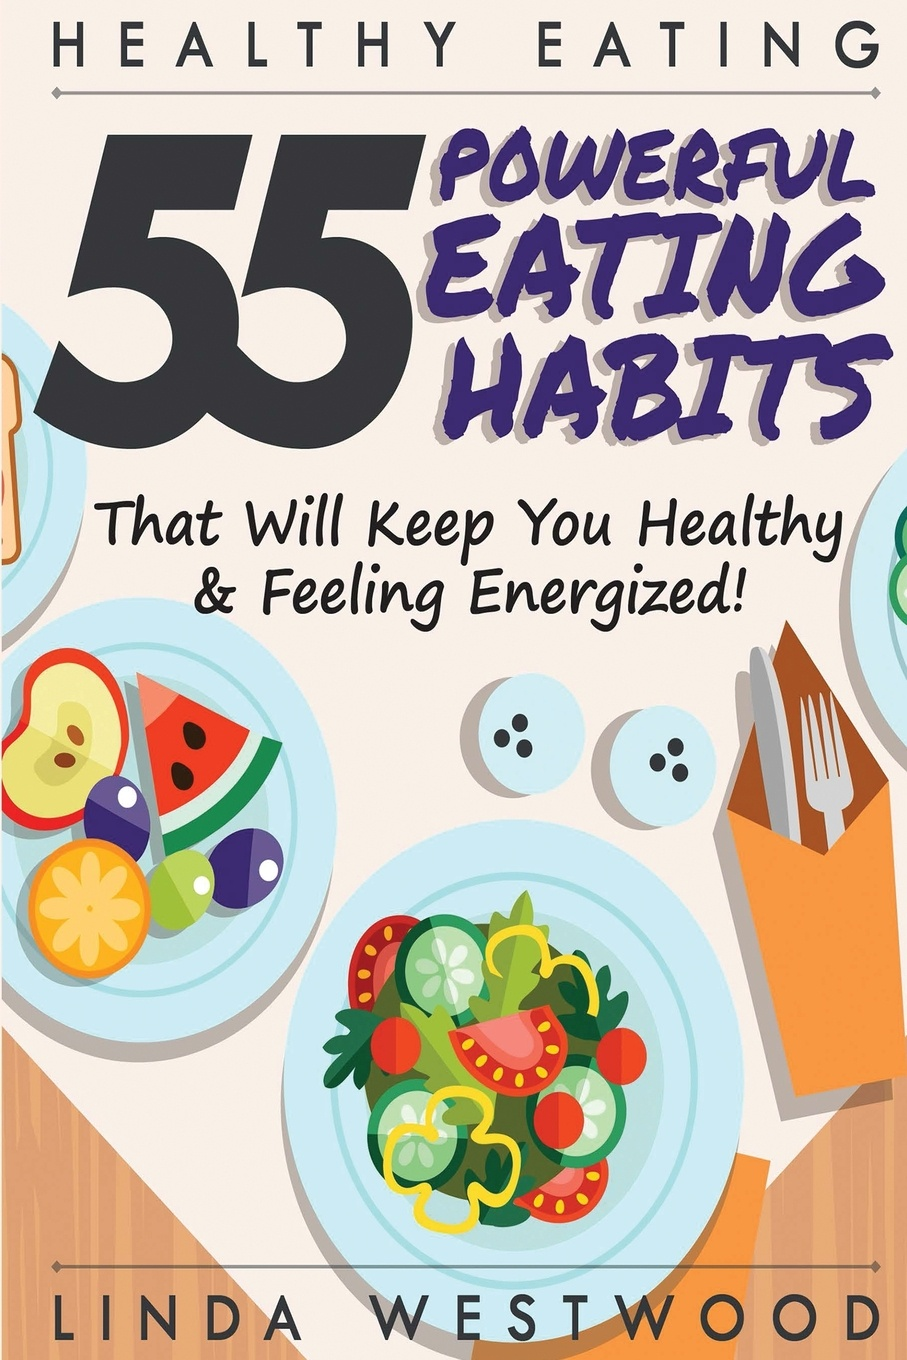 Фото - Linda Westwood Healthy Eating (3rd Edition). 55 POWERFUL Eating Habits That Will Keep You Healthy & Feeling Energized! karen parker carter irene healthy cooking fat loss with clean eating